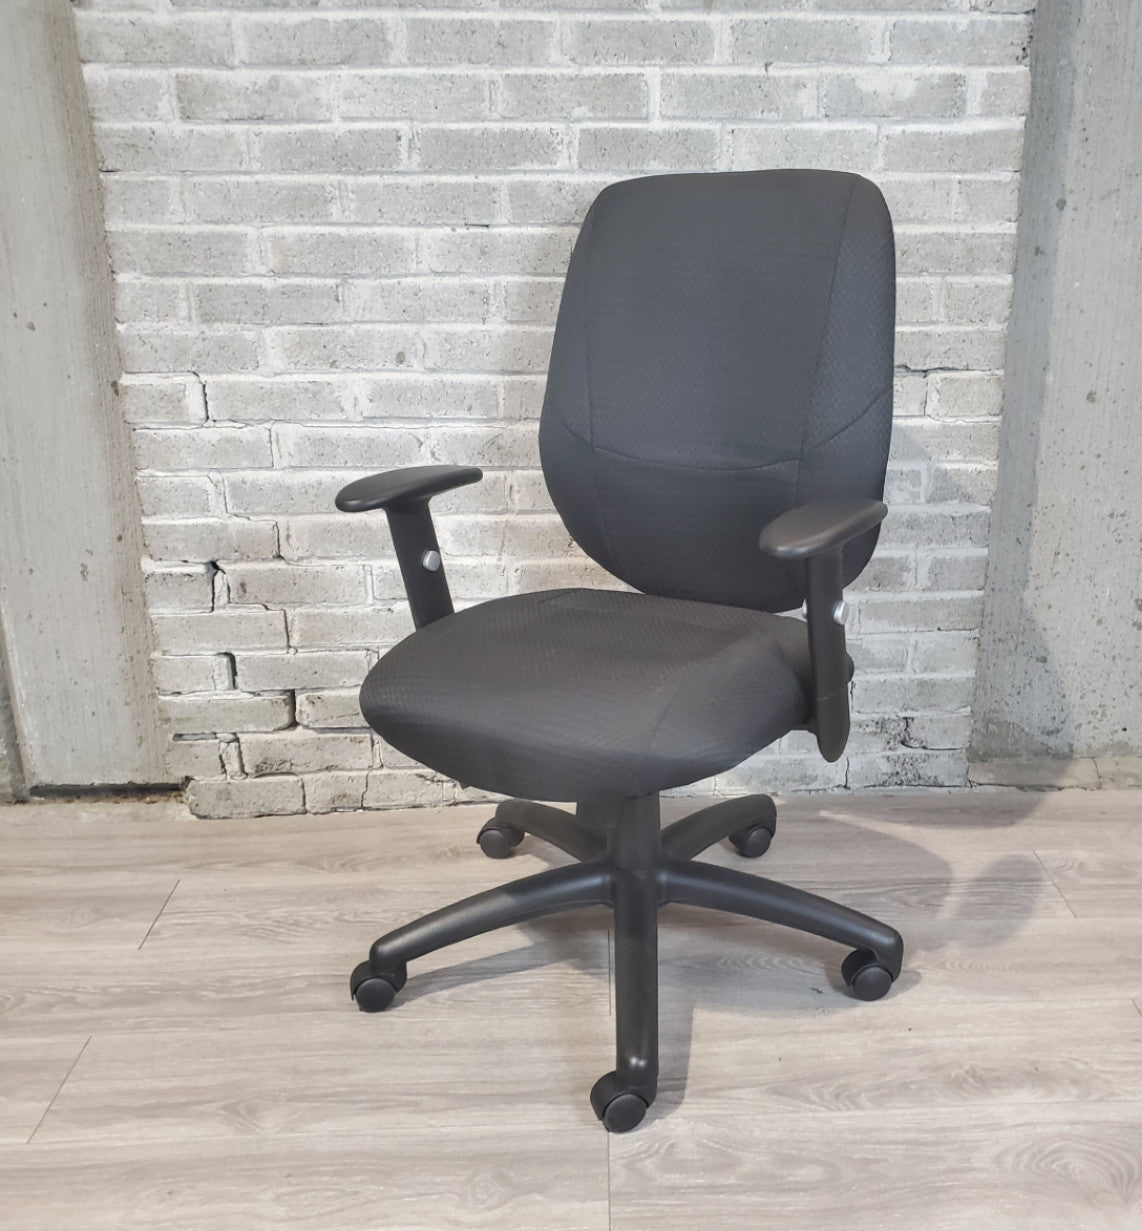 Used OTG Upholstered Task Chair - Black - Duckys Office Furniture